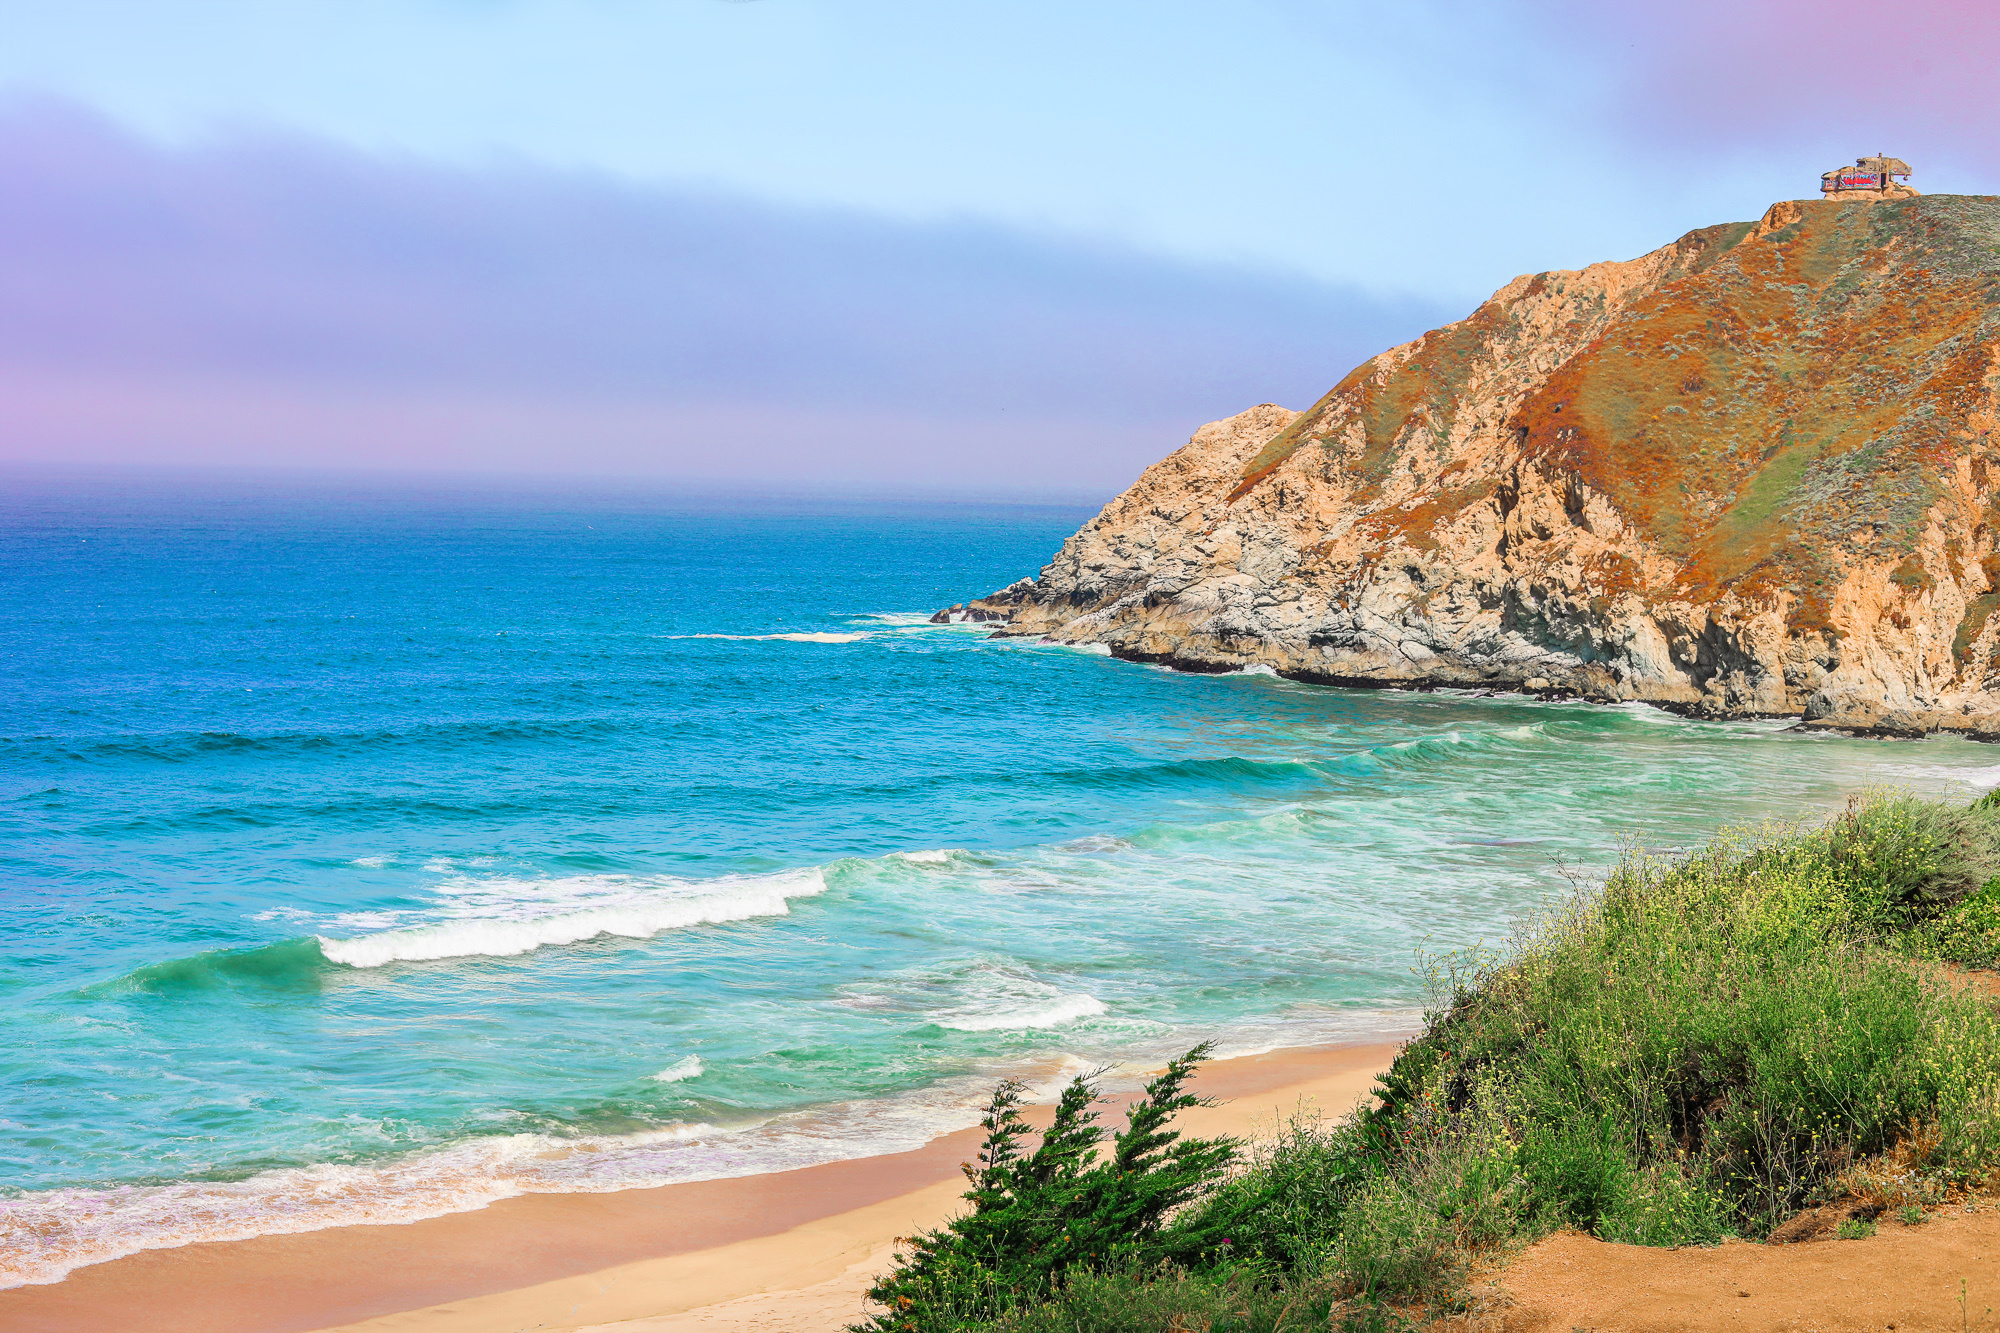 pacific coast highway, summer travel, road trip, itinerary , California coast, grey whale cove, the coast of California road trip guide, travel, summer, san fransico, fun, summer trip, blogging, highway one, traveling the coast of cali, ocean, pacific, mountains, photography,